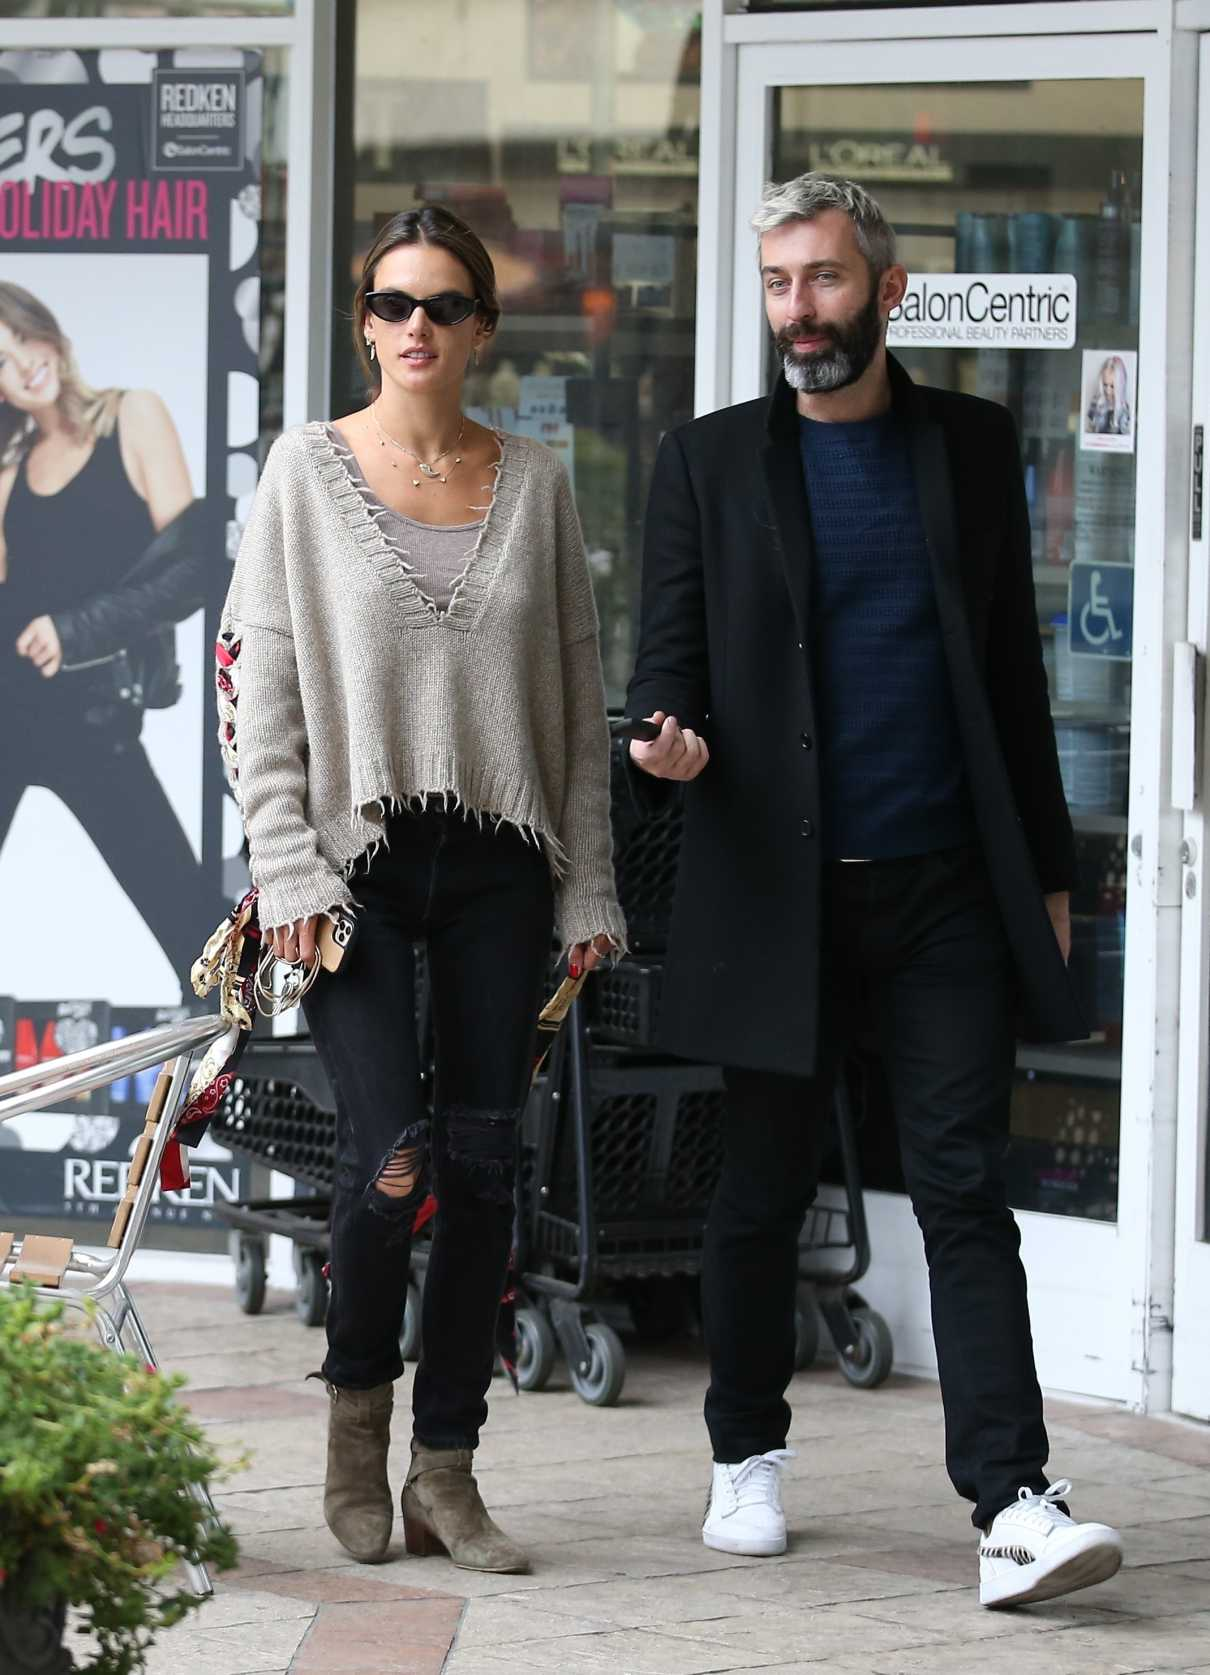 Alessandra Ambrosio in a Black Ripped Jeans